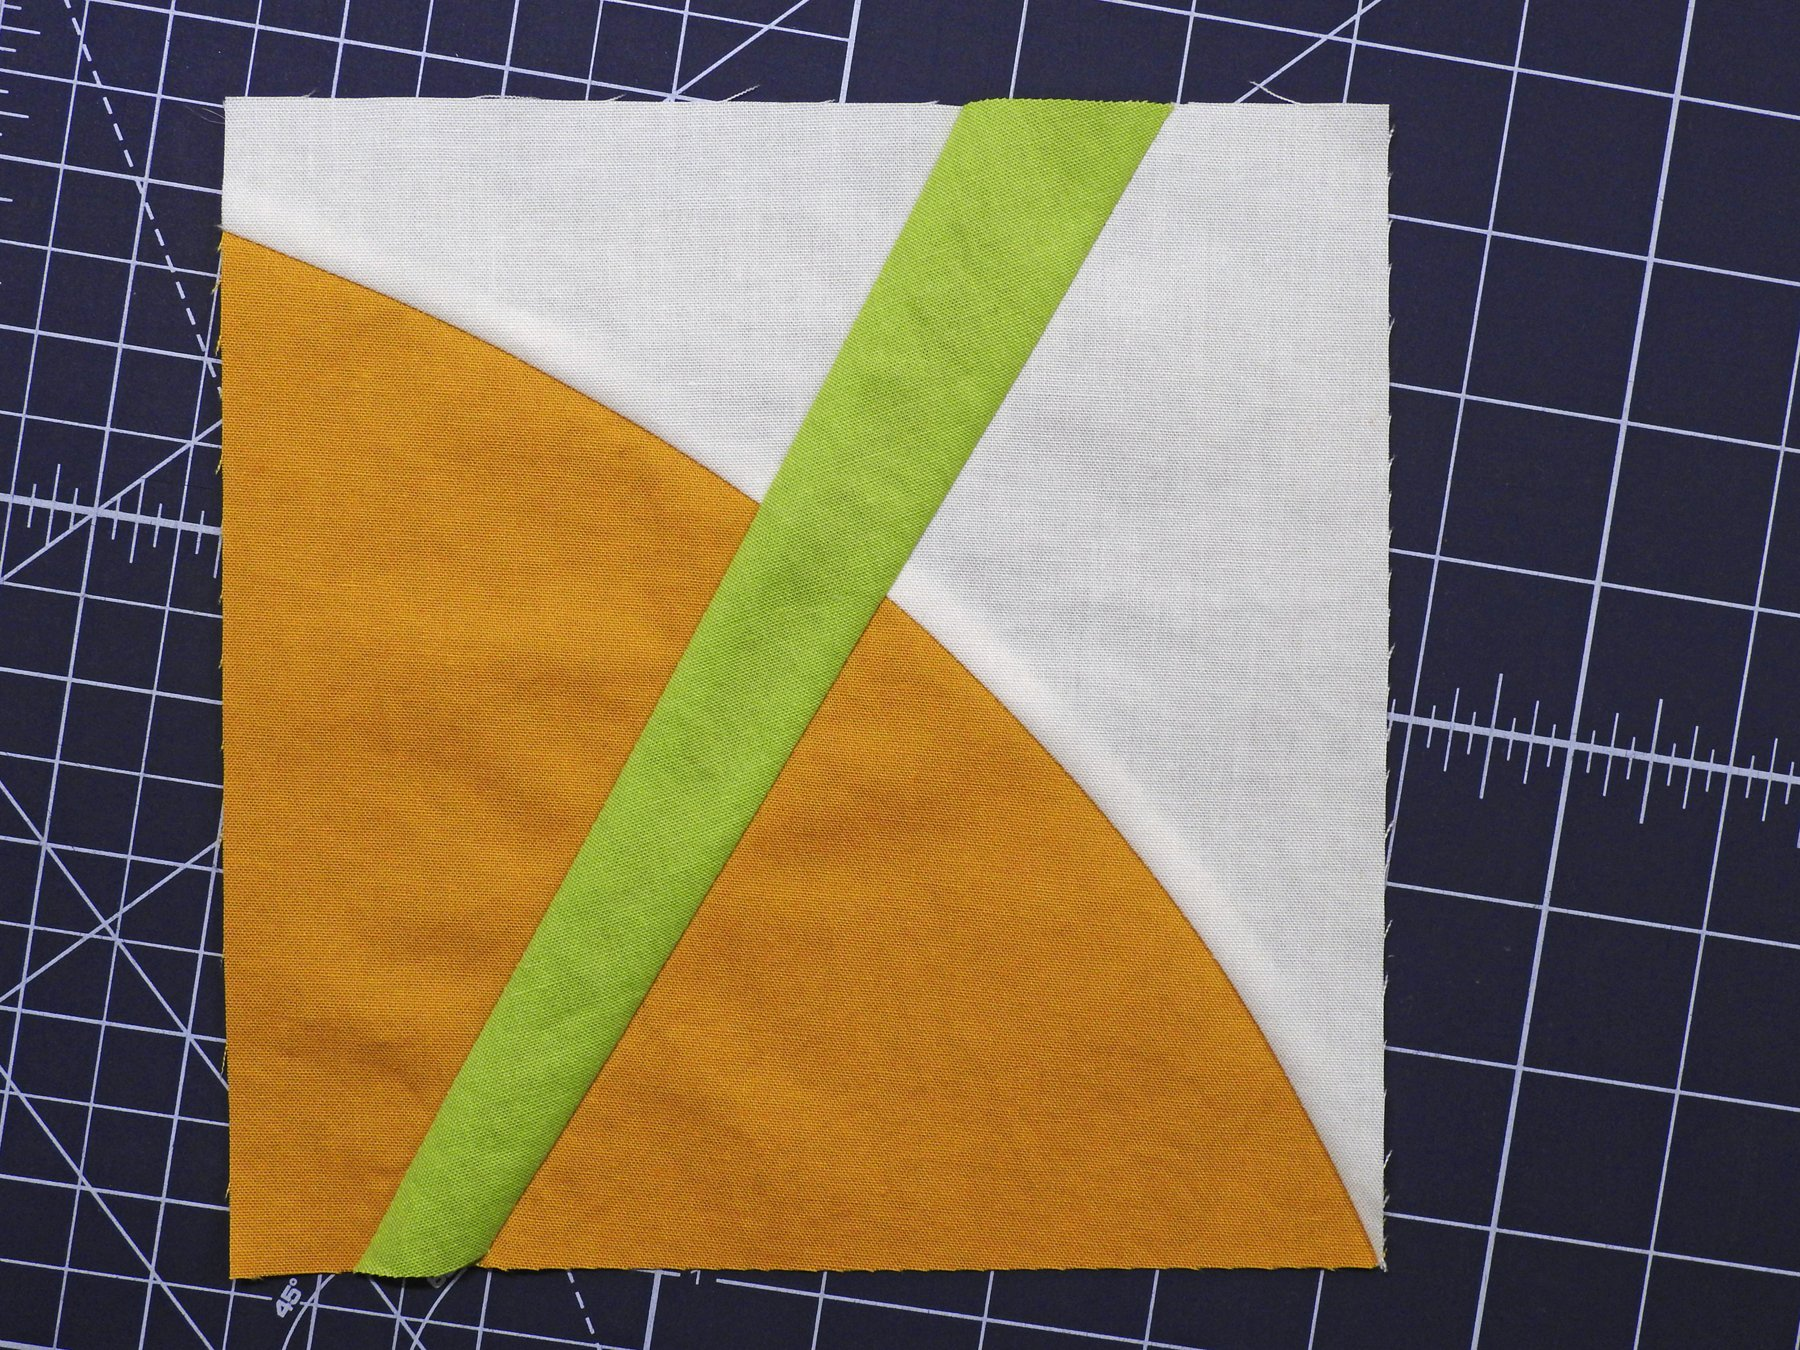 Group Quilt Block 4 - Improv Curve and Inset Line